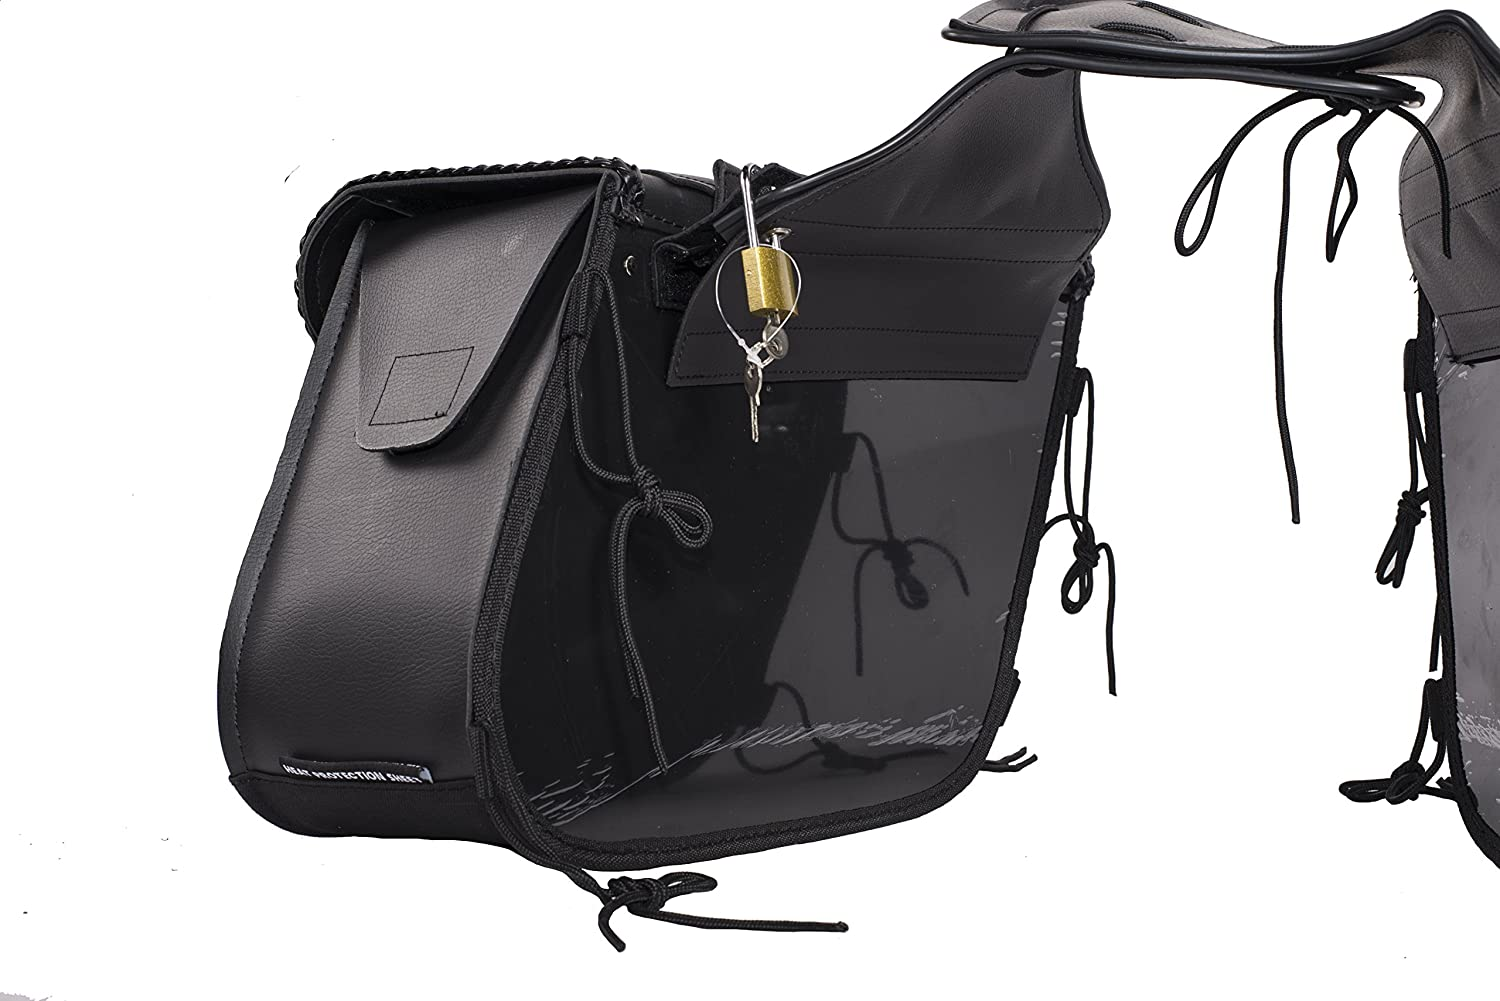 Dream Apparel Universal PVC Motorcycle Saddlebag With Heavy Duty Quick Release SD4065